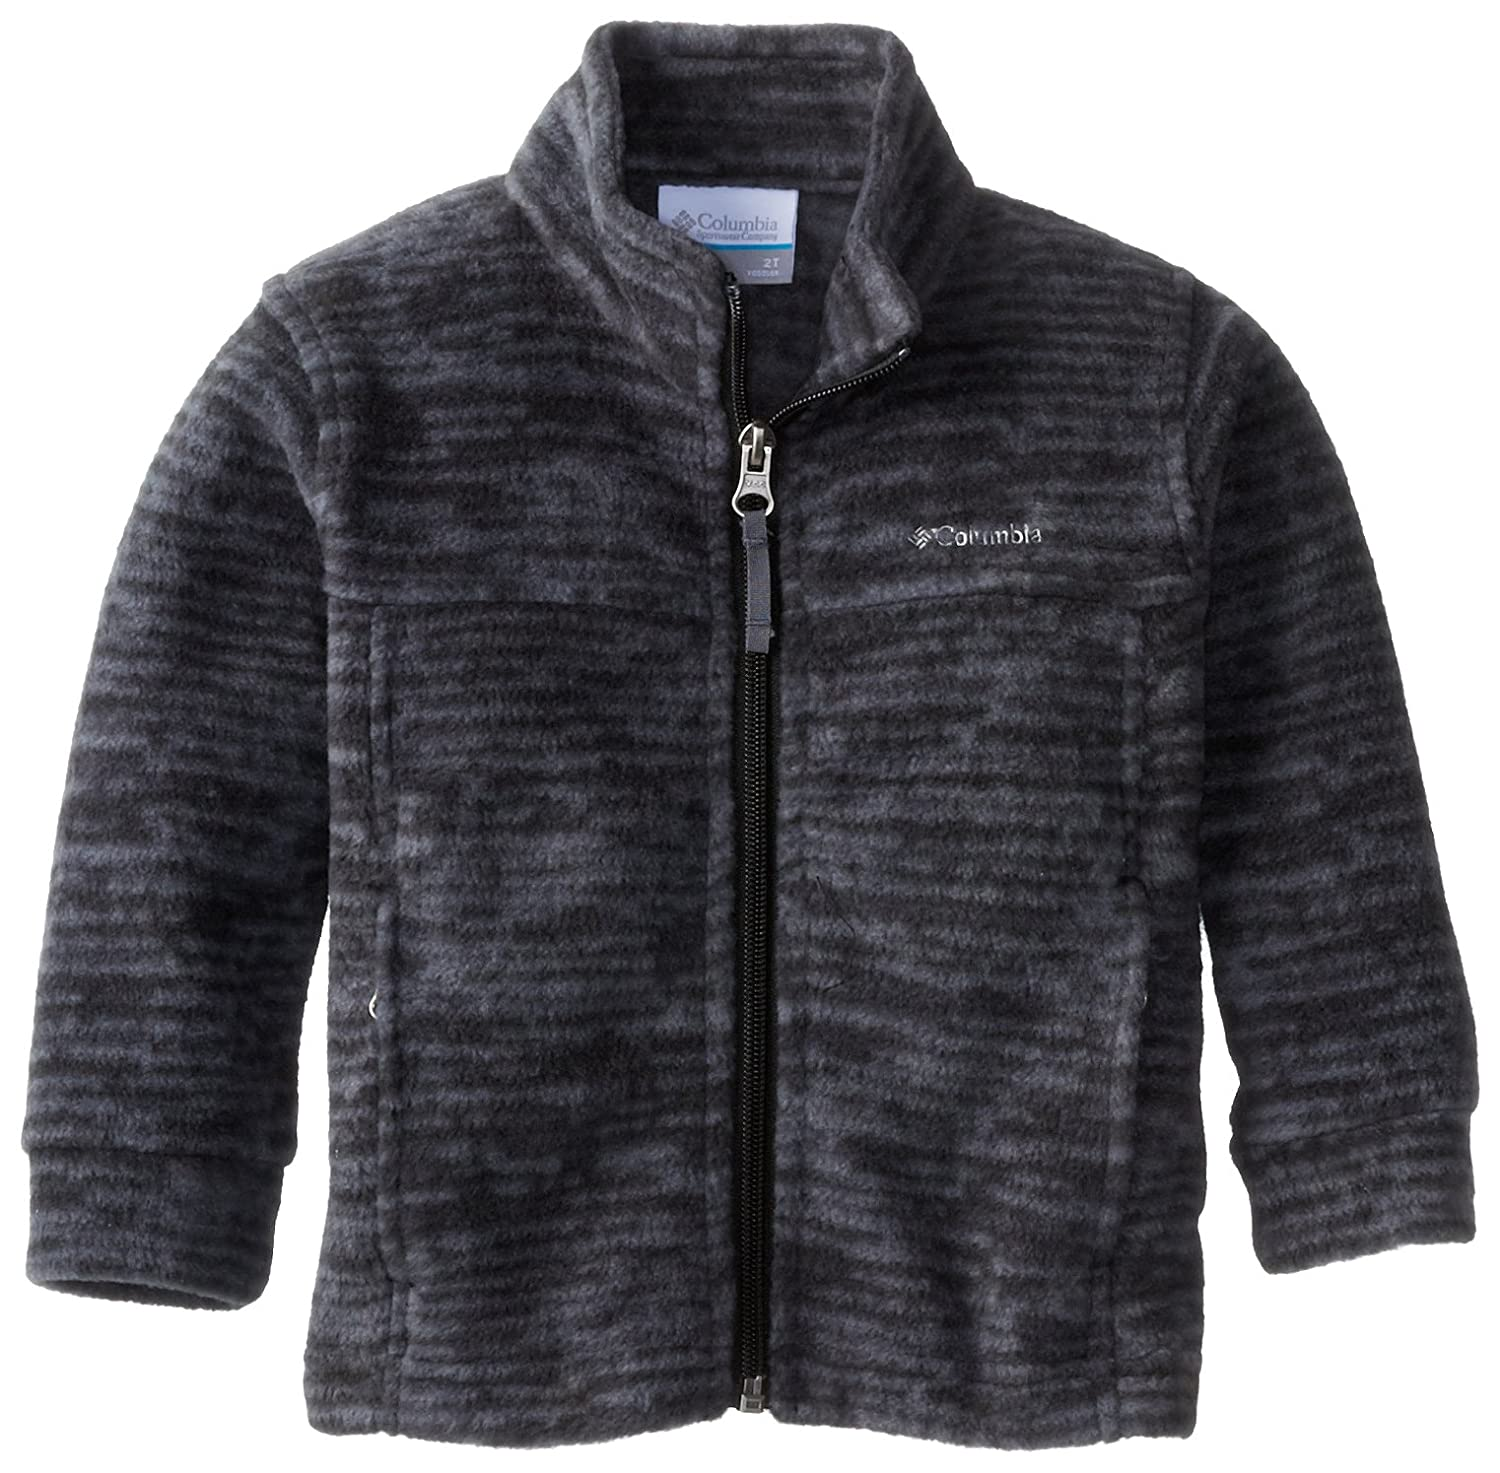 Columbia Boys' Zing Ii Fleece Jacket Black/Distress Stripe 4T WD6761